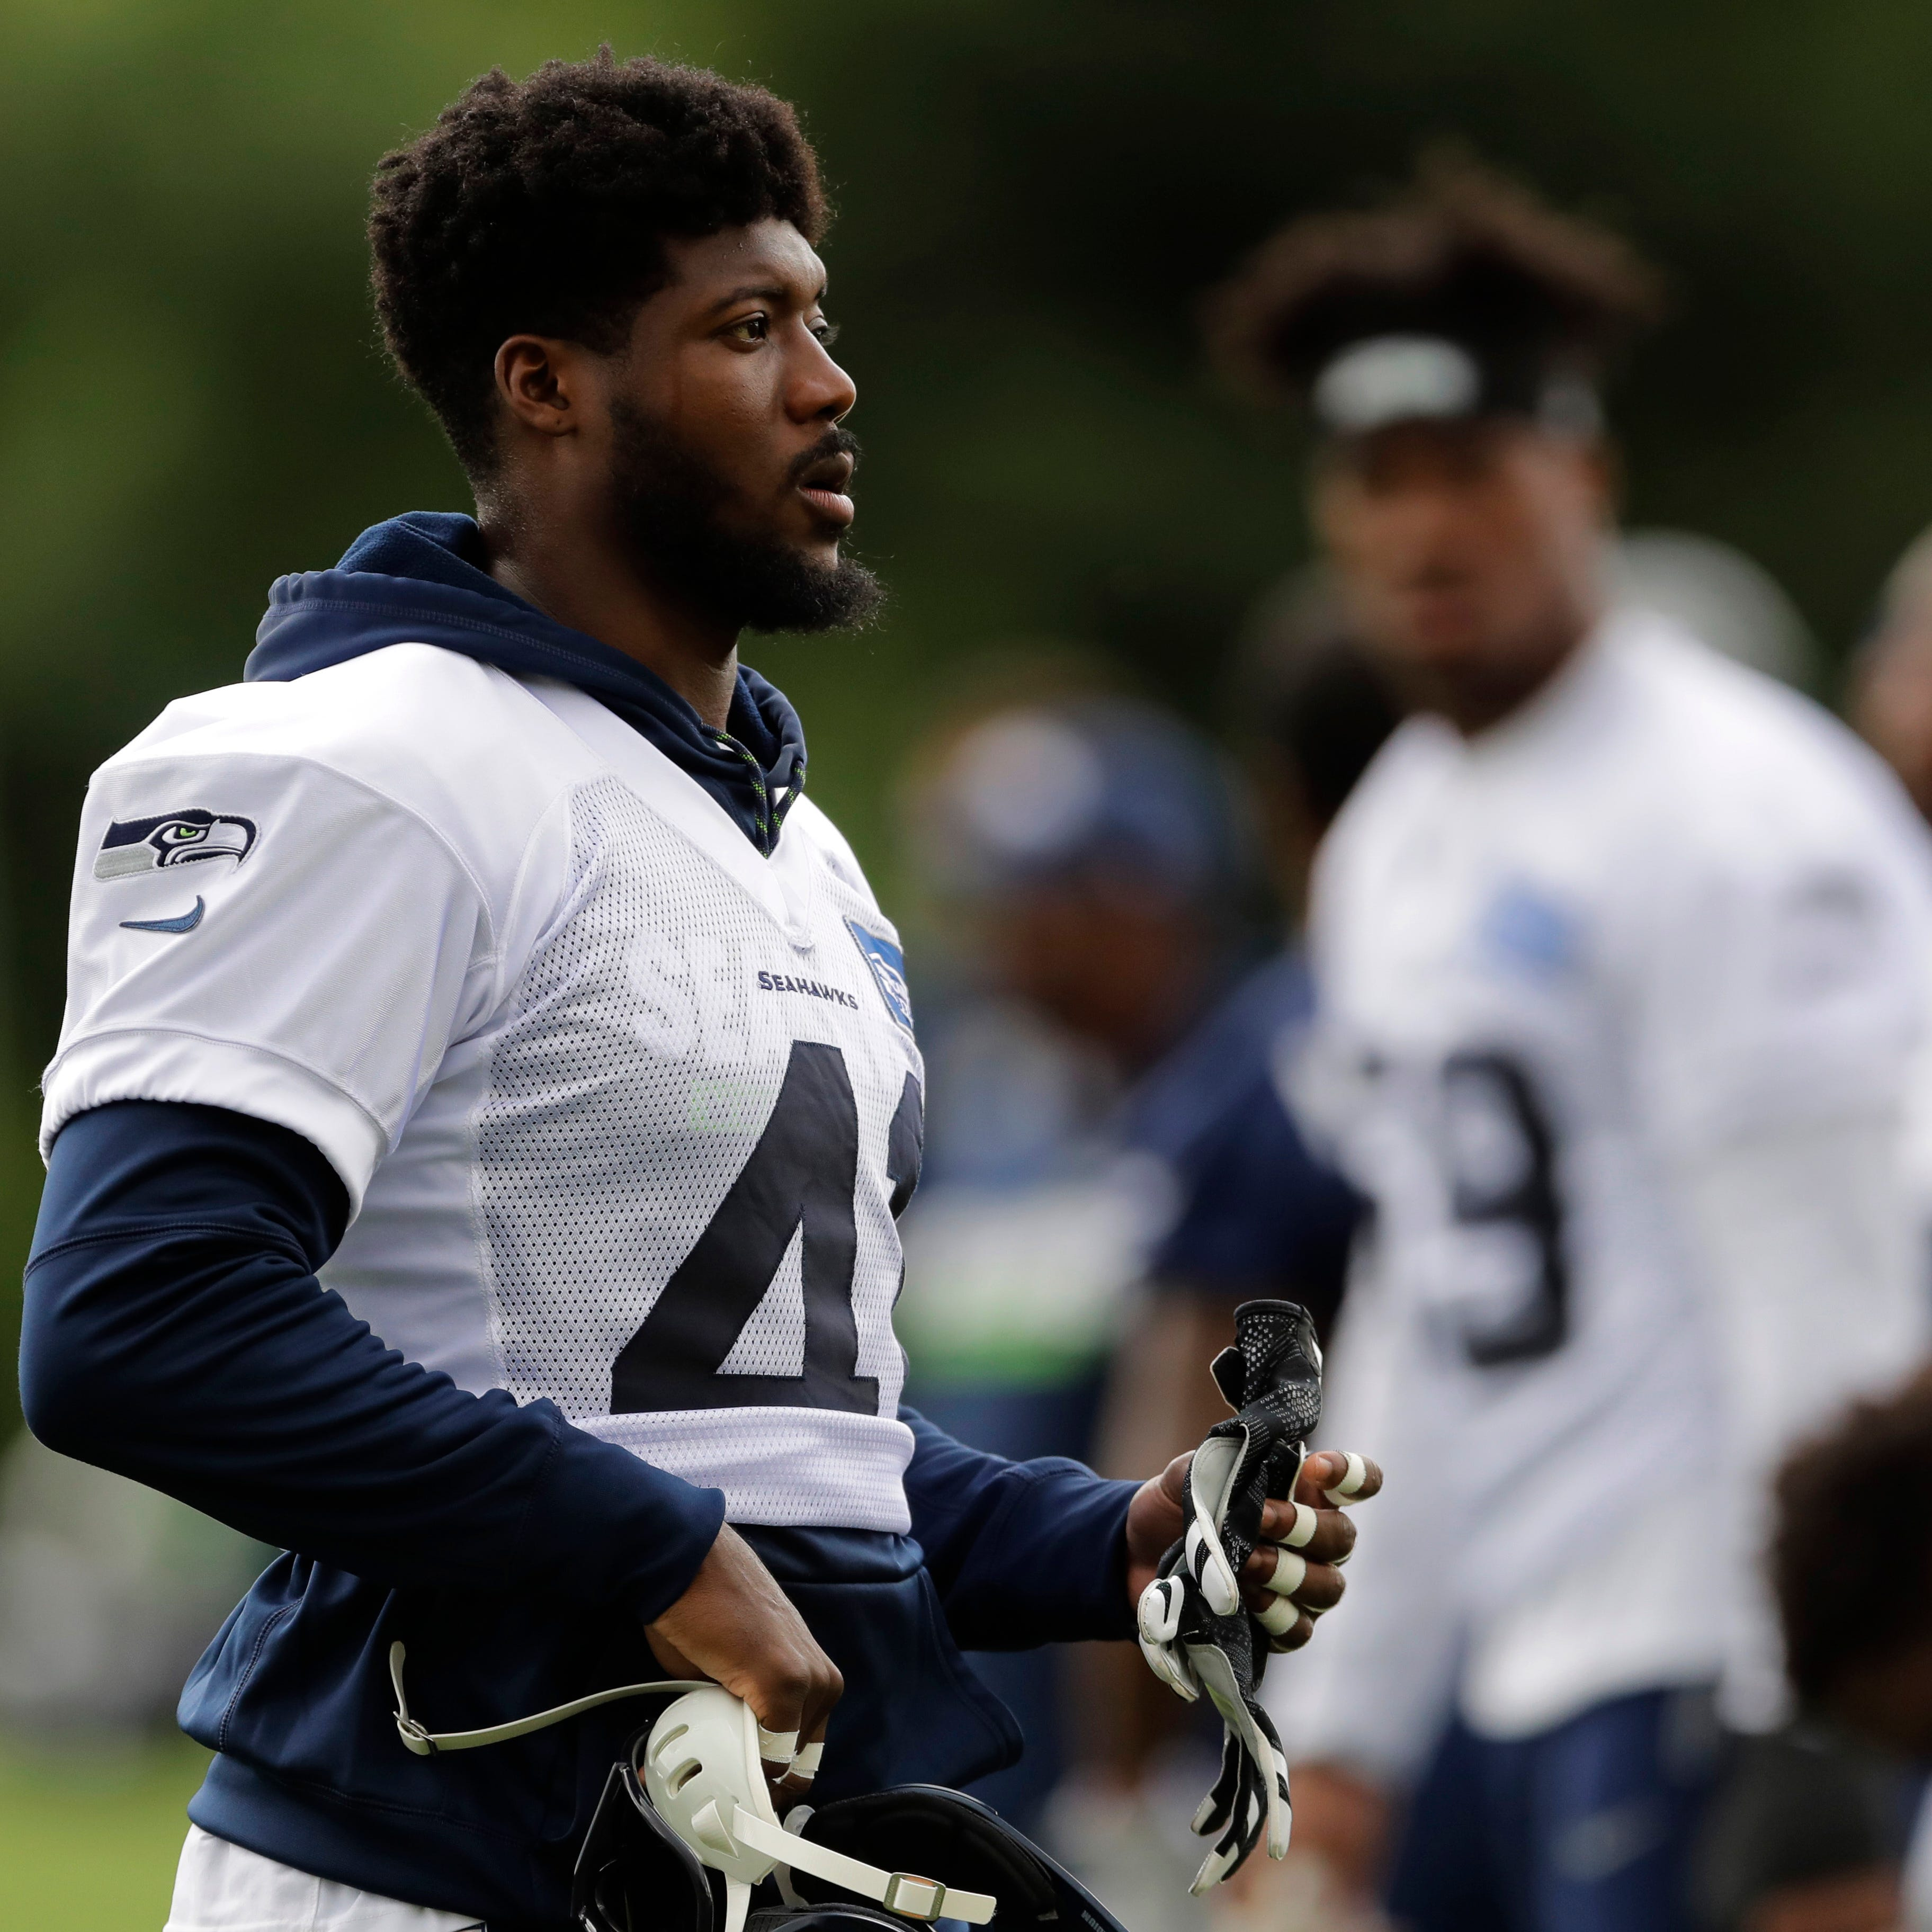 Three players competing for Seattle Seahawks' starting right cornerback spot